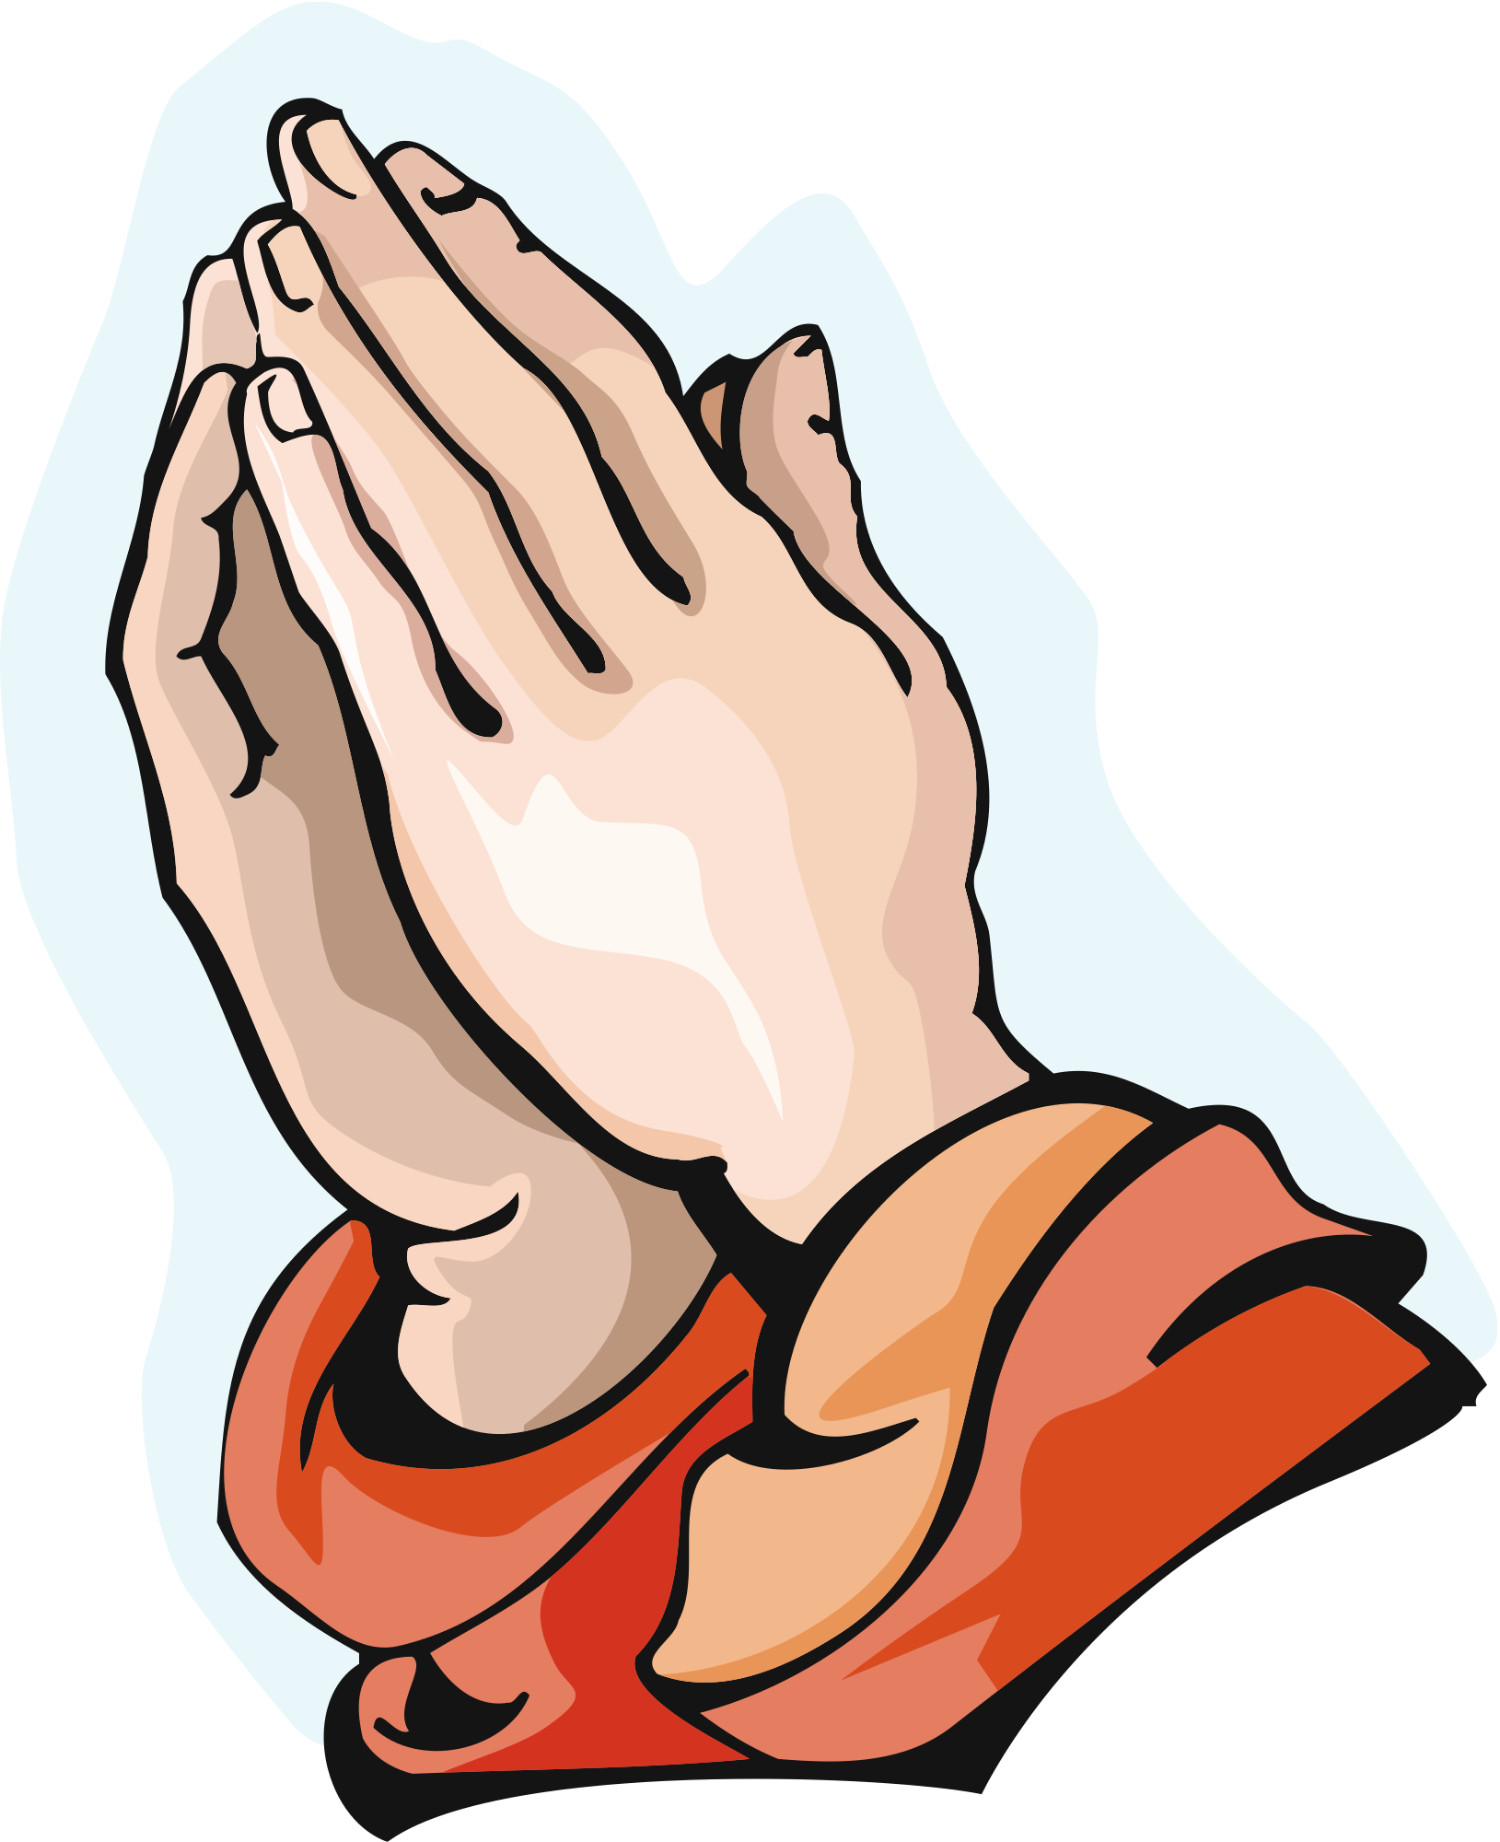 Funeral clipart prayer hand. Lovely image of